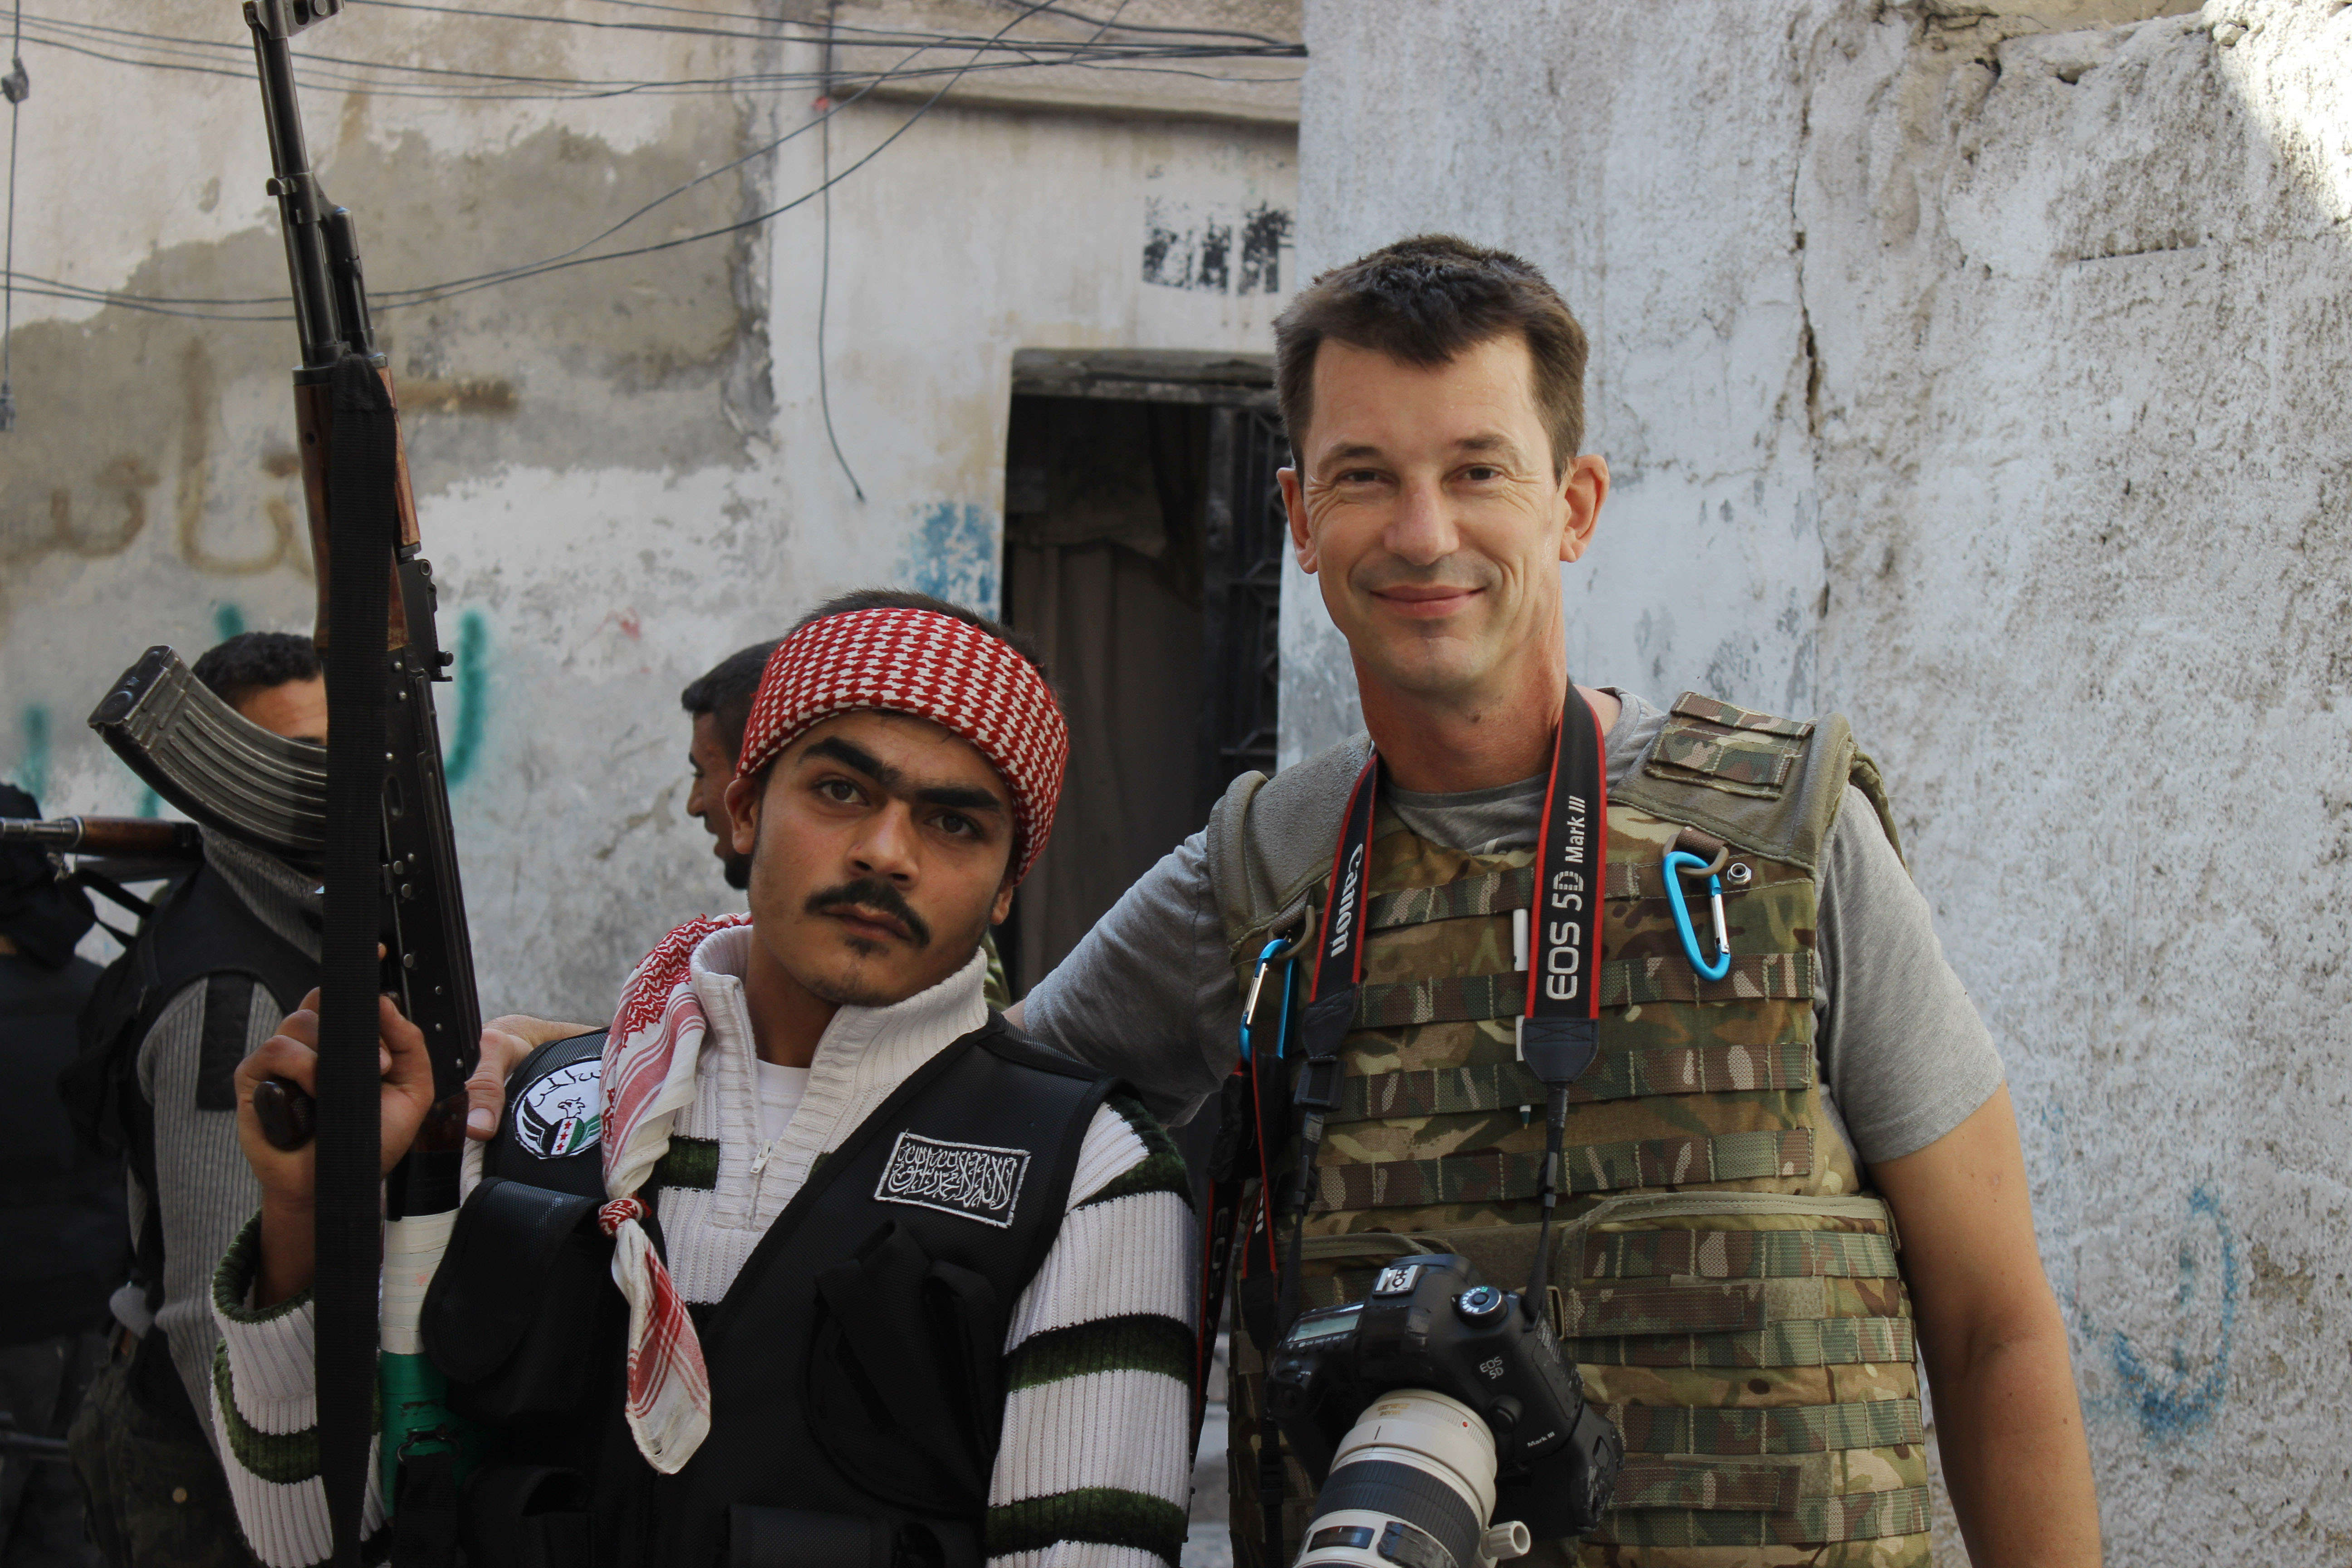 British Hostage John Cantlie Appears In New ISIS Propaganda Video PA 22138028